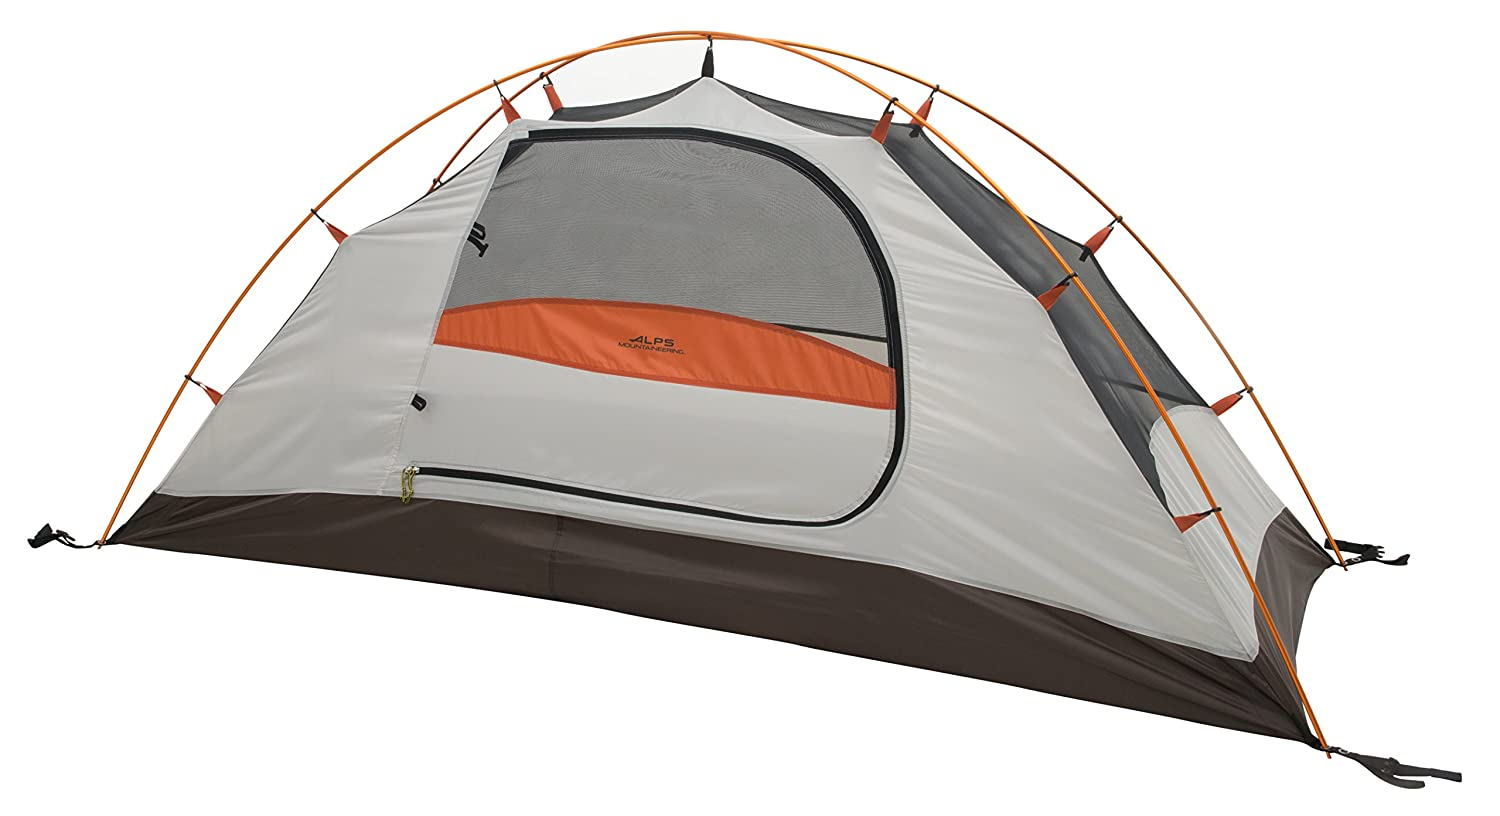 Alps Mountaineering Lynx 1 Tent  sc 1 st  The C&ing Trips & The Best Tents for Rain - Wet-weather Camping Essentials